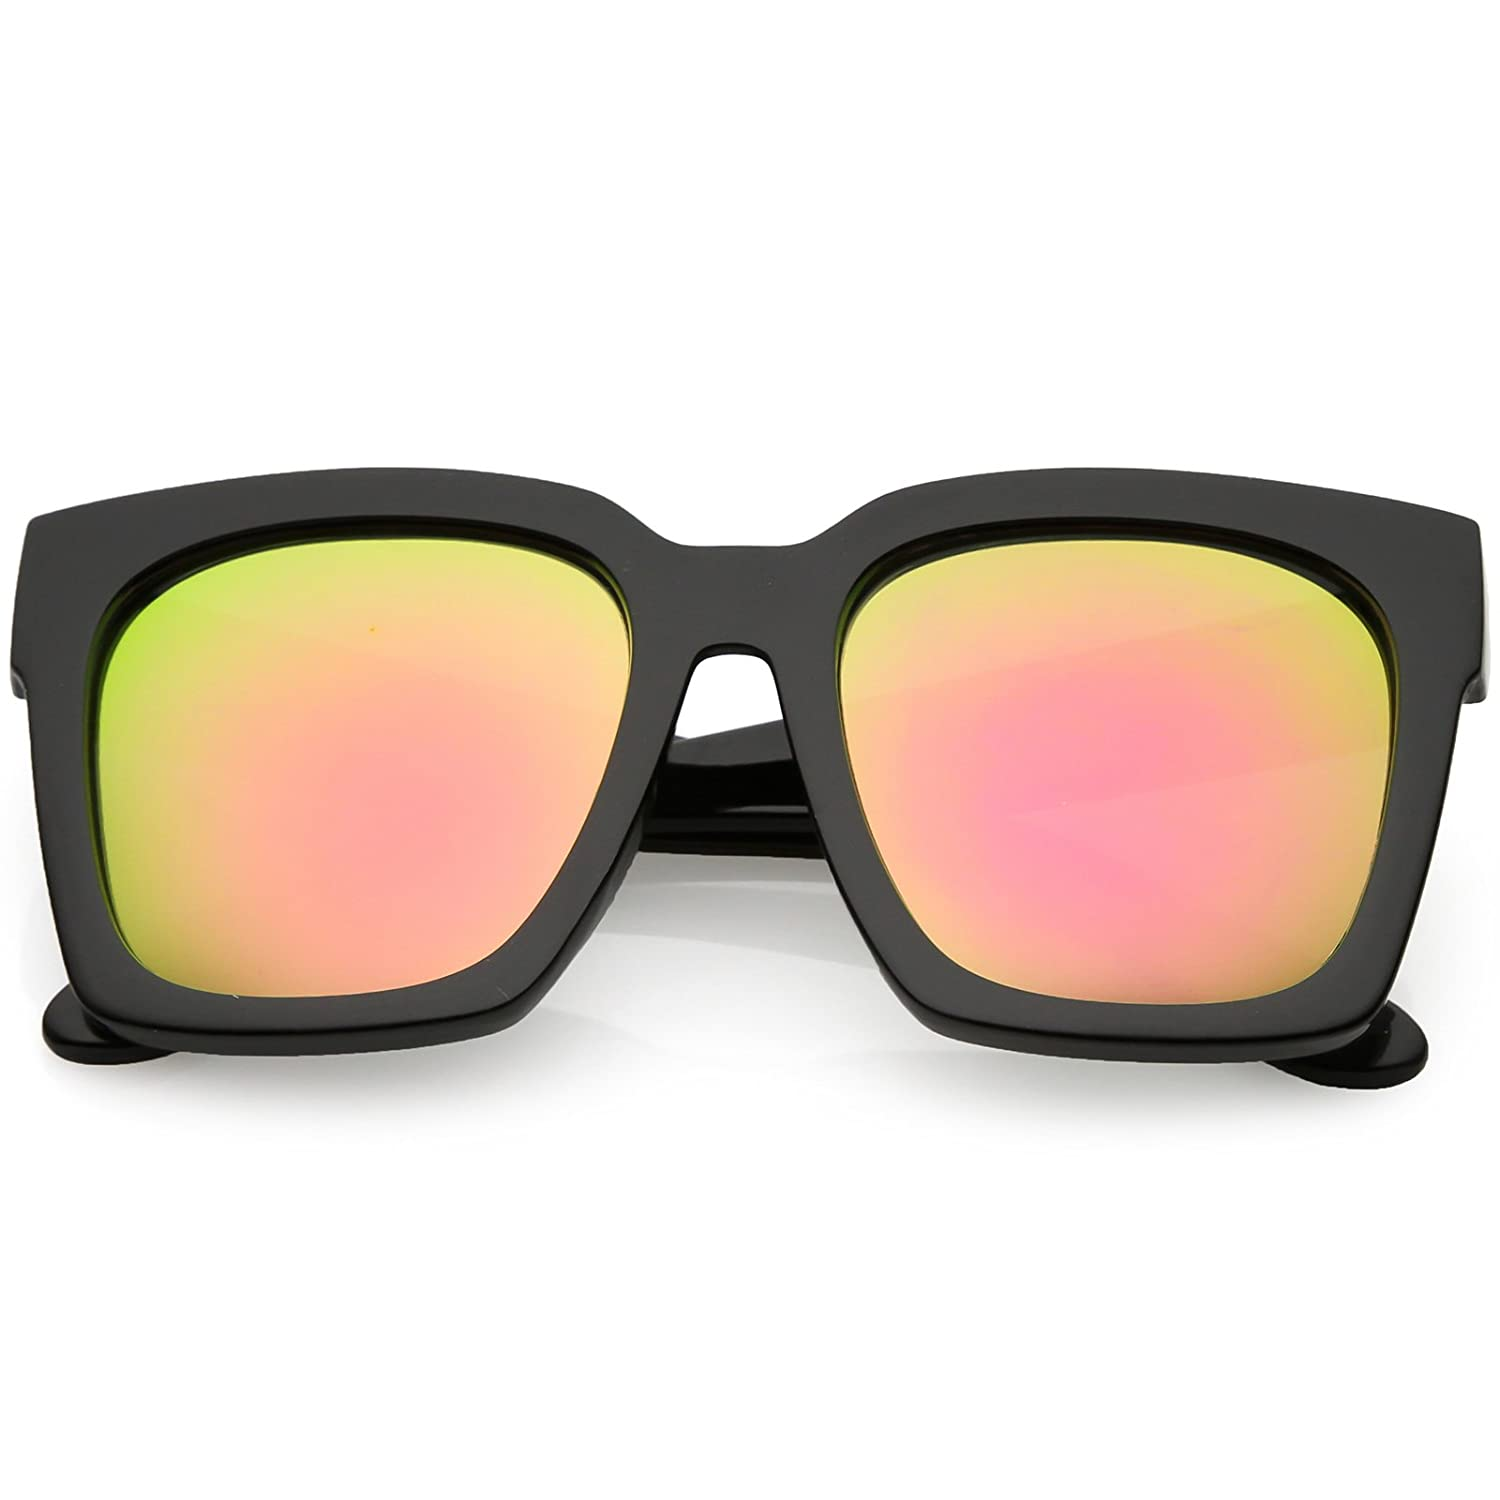 cf7adf1875eb5 Amazon.com  zeroUV - Bold Thick Arms Colored Mirror Square Lens Horn Rimmed  Sunglasses 58mm (Black Pink Green Mirror)  Clothing